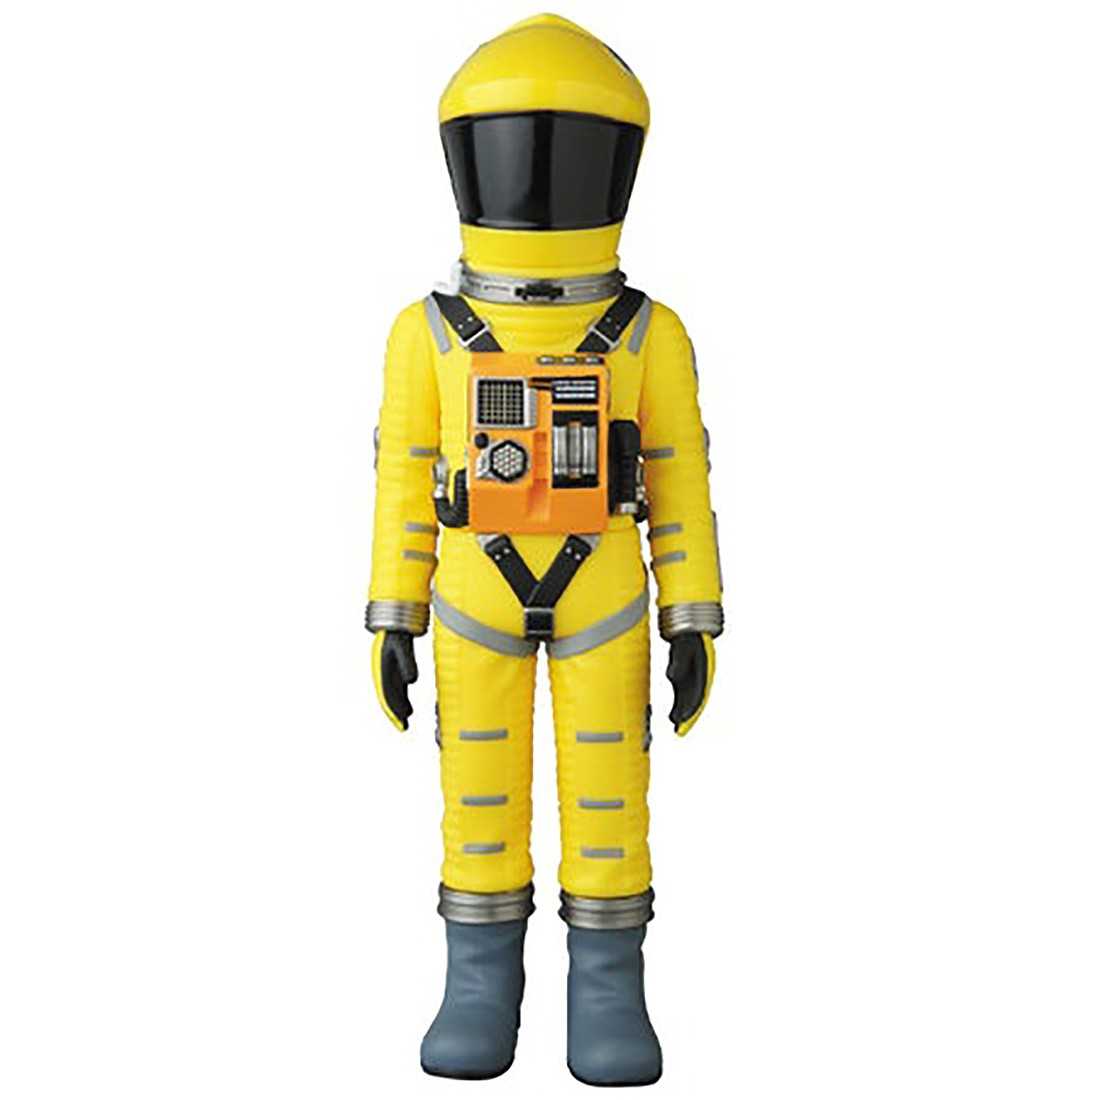 PREORDER - Medicom VCD 2001 A Space Odyssey Space Suit Yellow Ver. Figure (yellow)